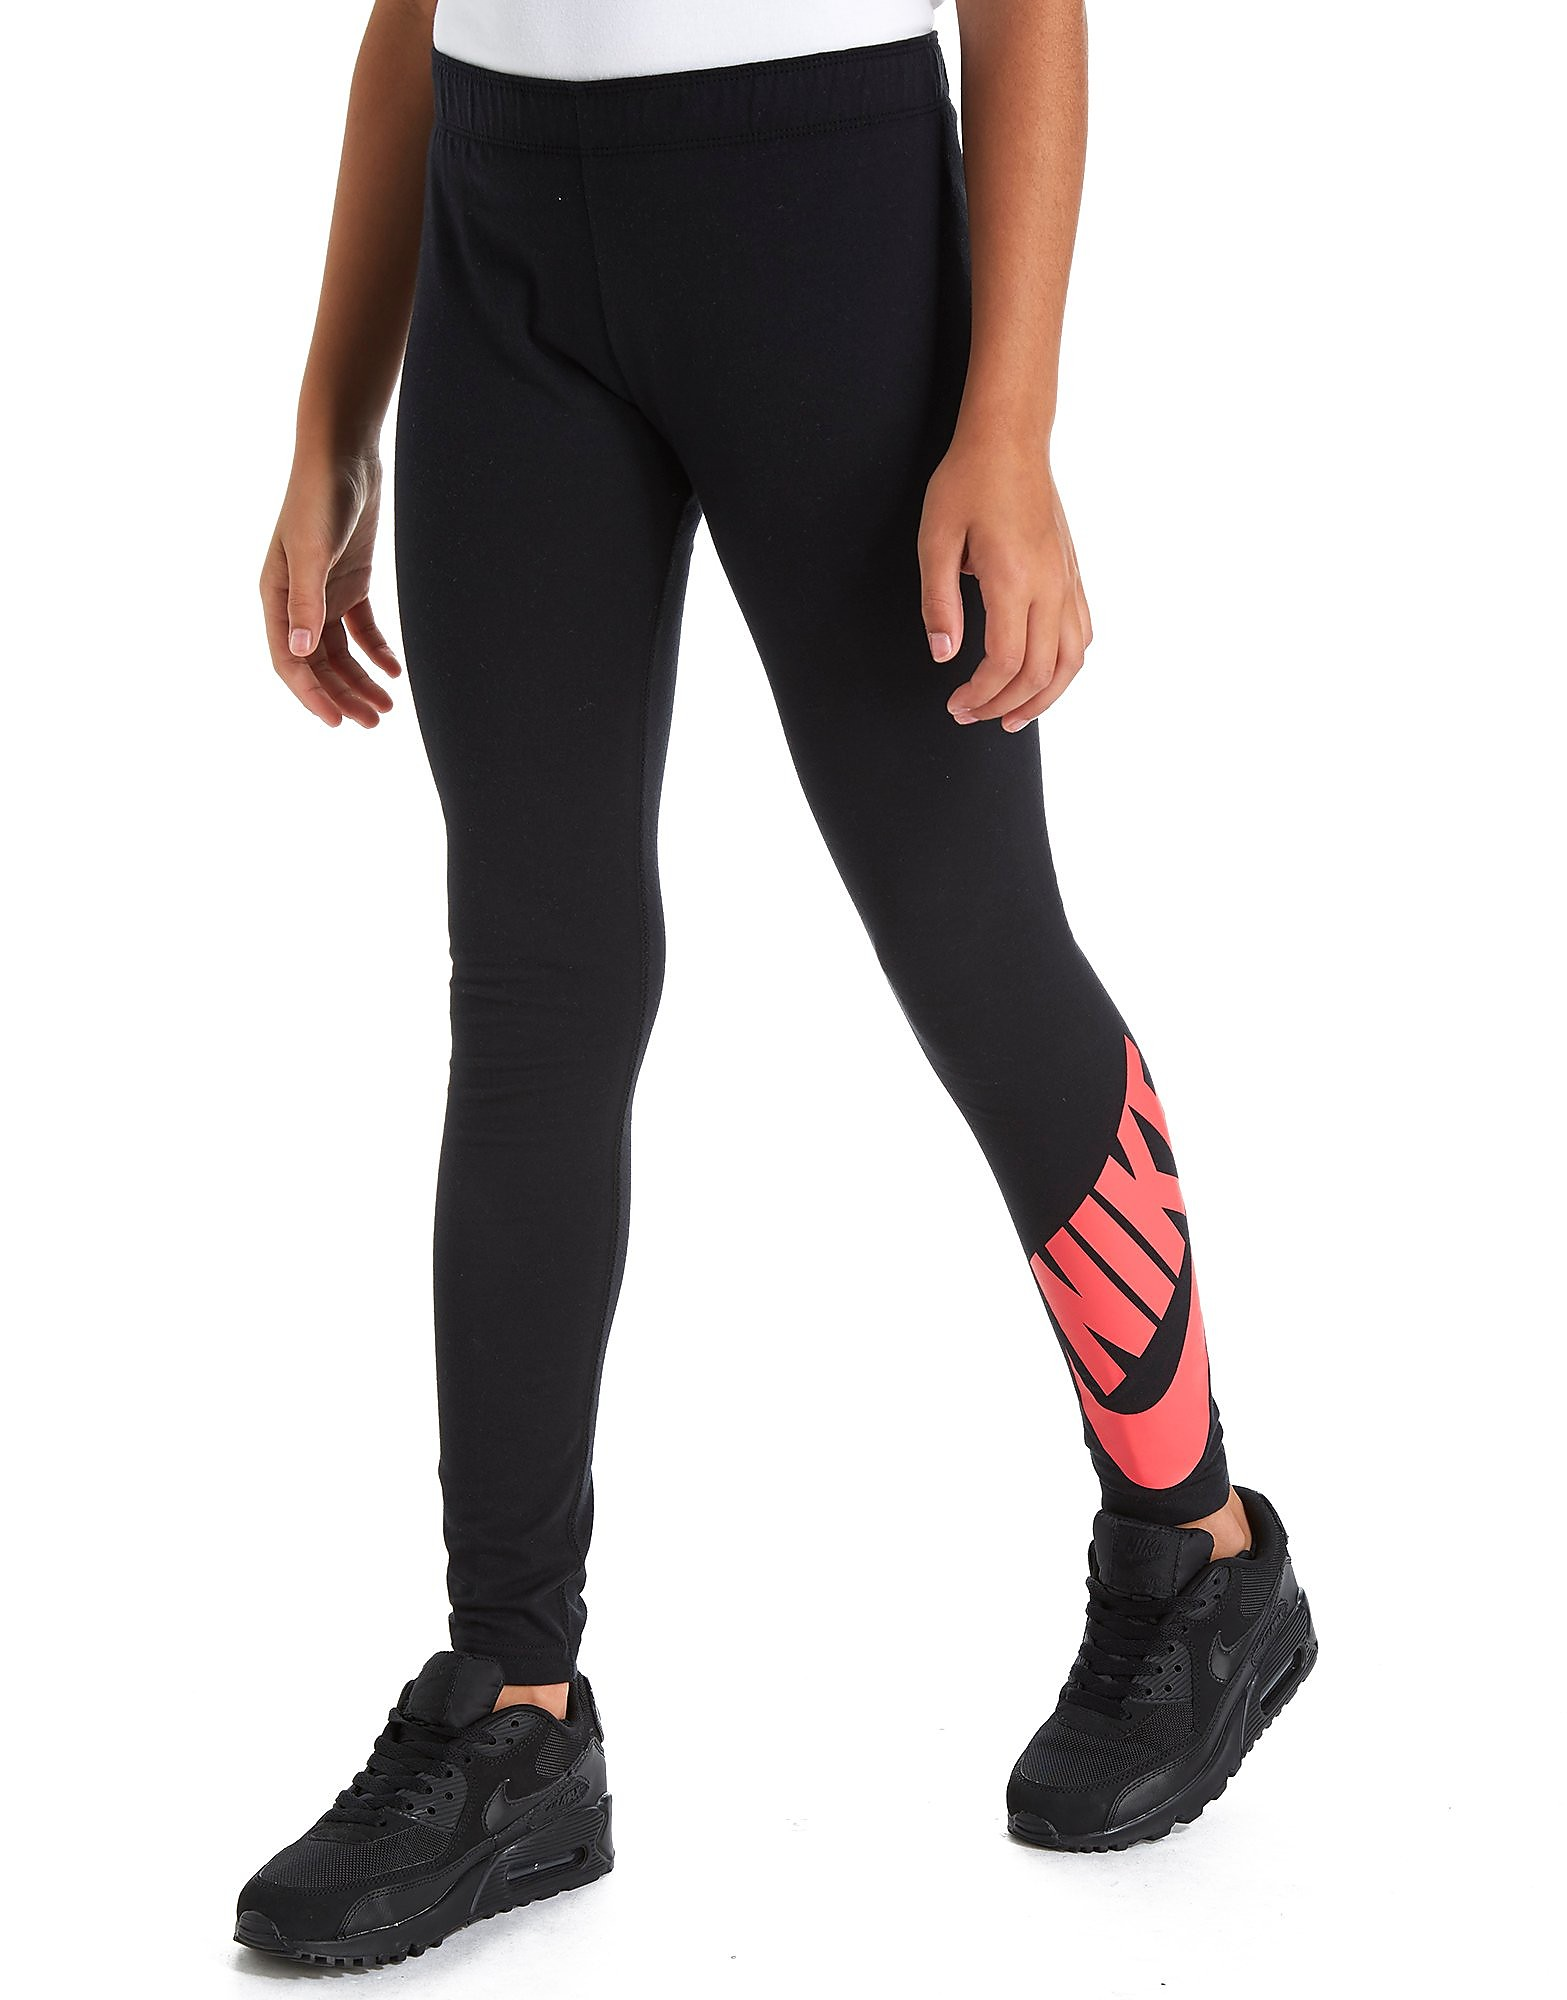 Nike Dry Corp Tights Girls'